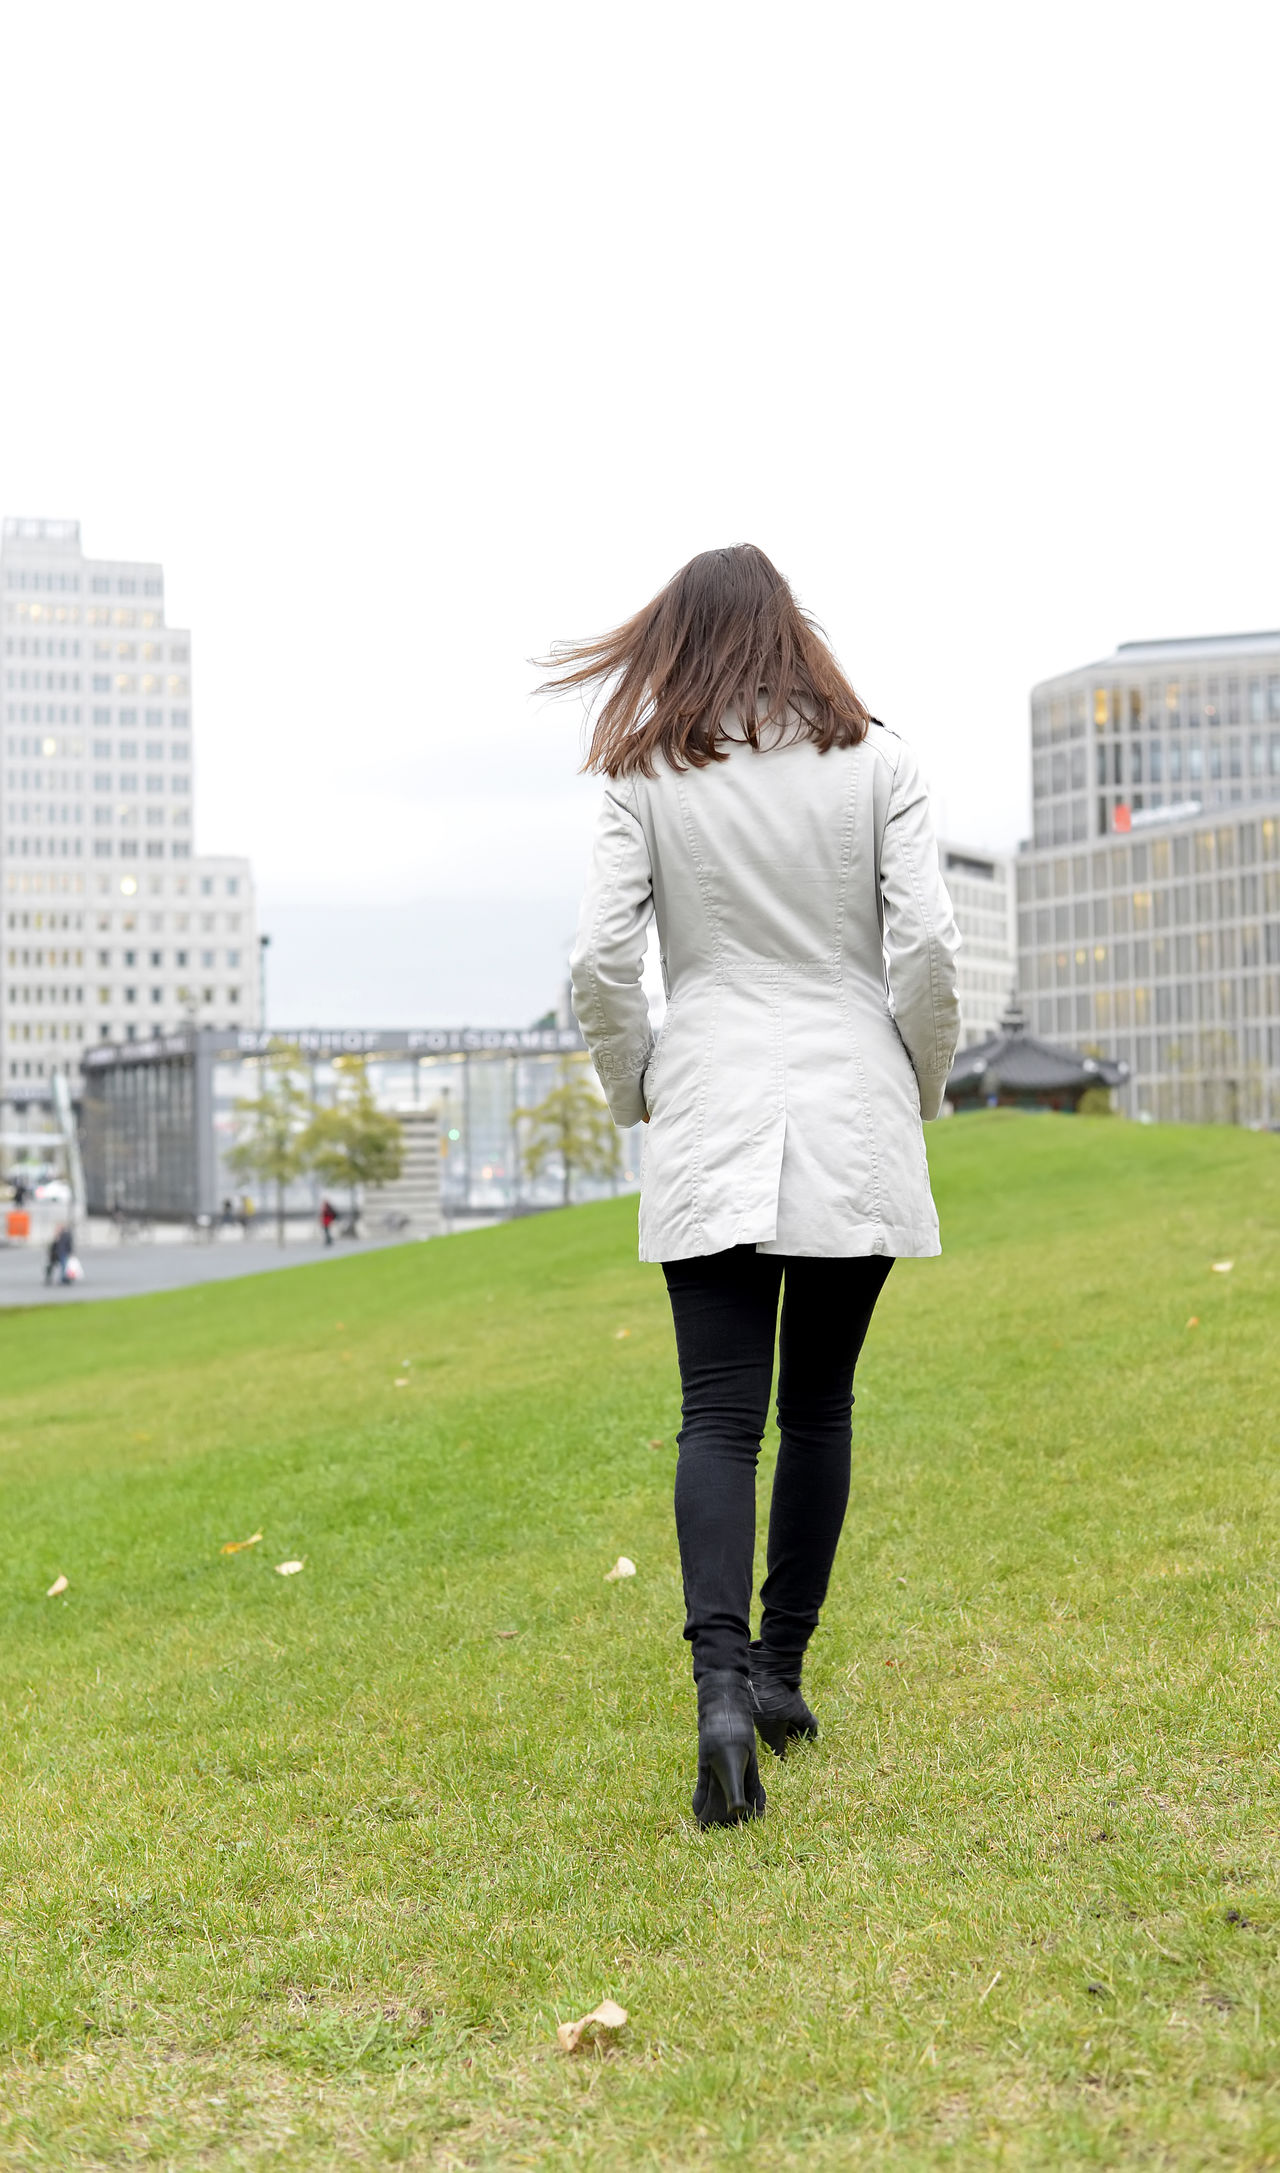 businesswoman in the city, rear view Architecture Business Businesswoman City Cityscape Coat Contemplating Full Length Green Hurry Livestyle Manager Meadow One Person Outdoors Pensive Rear View Sky Slim Stress Strolling Thinking Urban Walking Woman